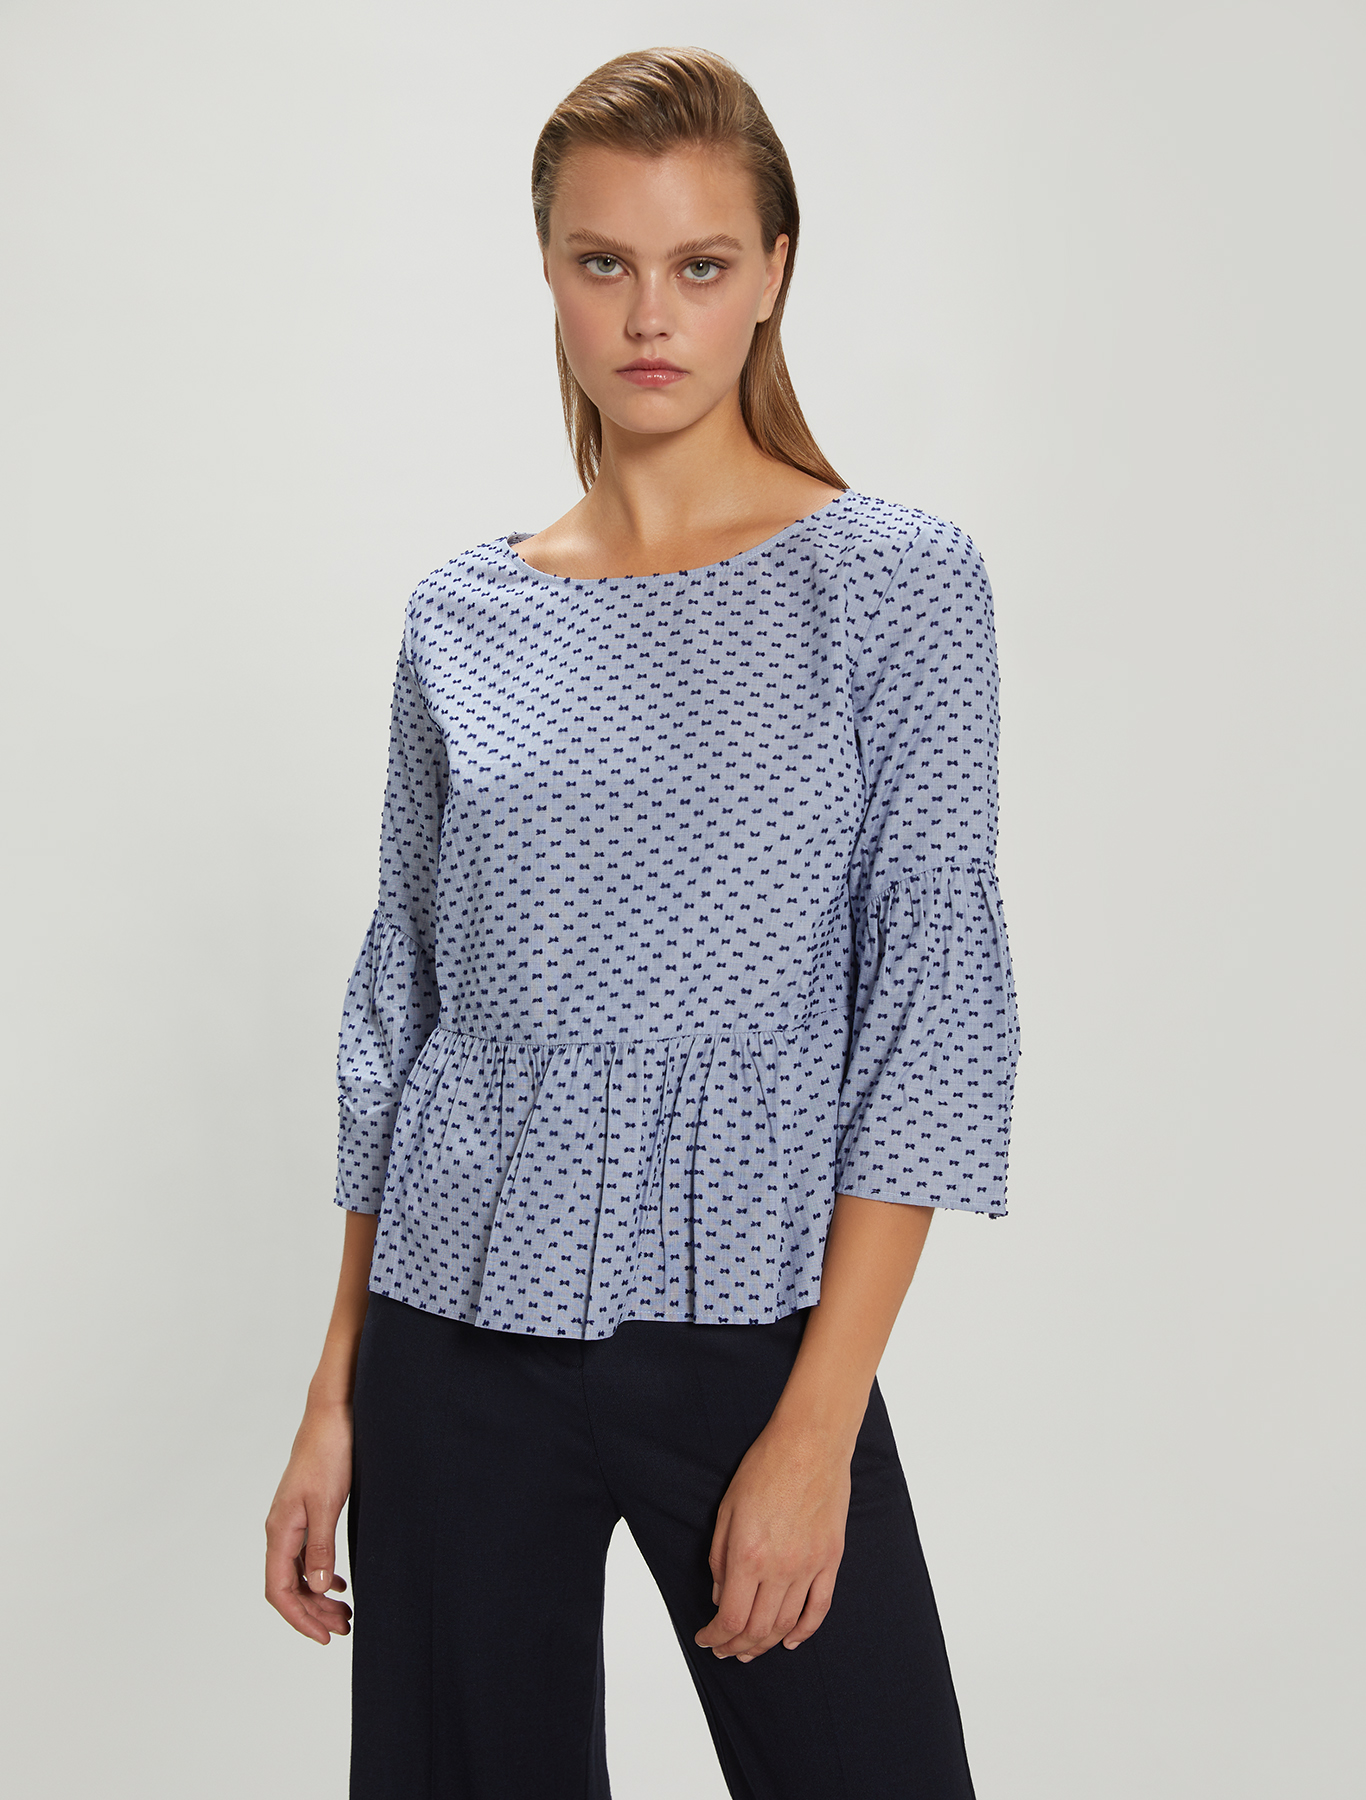 Fil coupé cotton blouse - light blue pattern - pennyblack